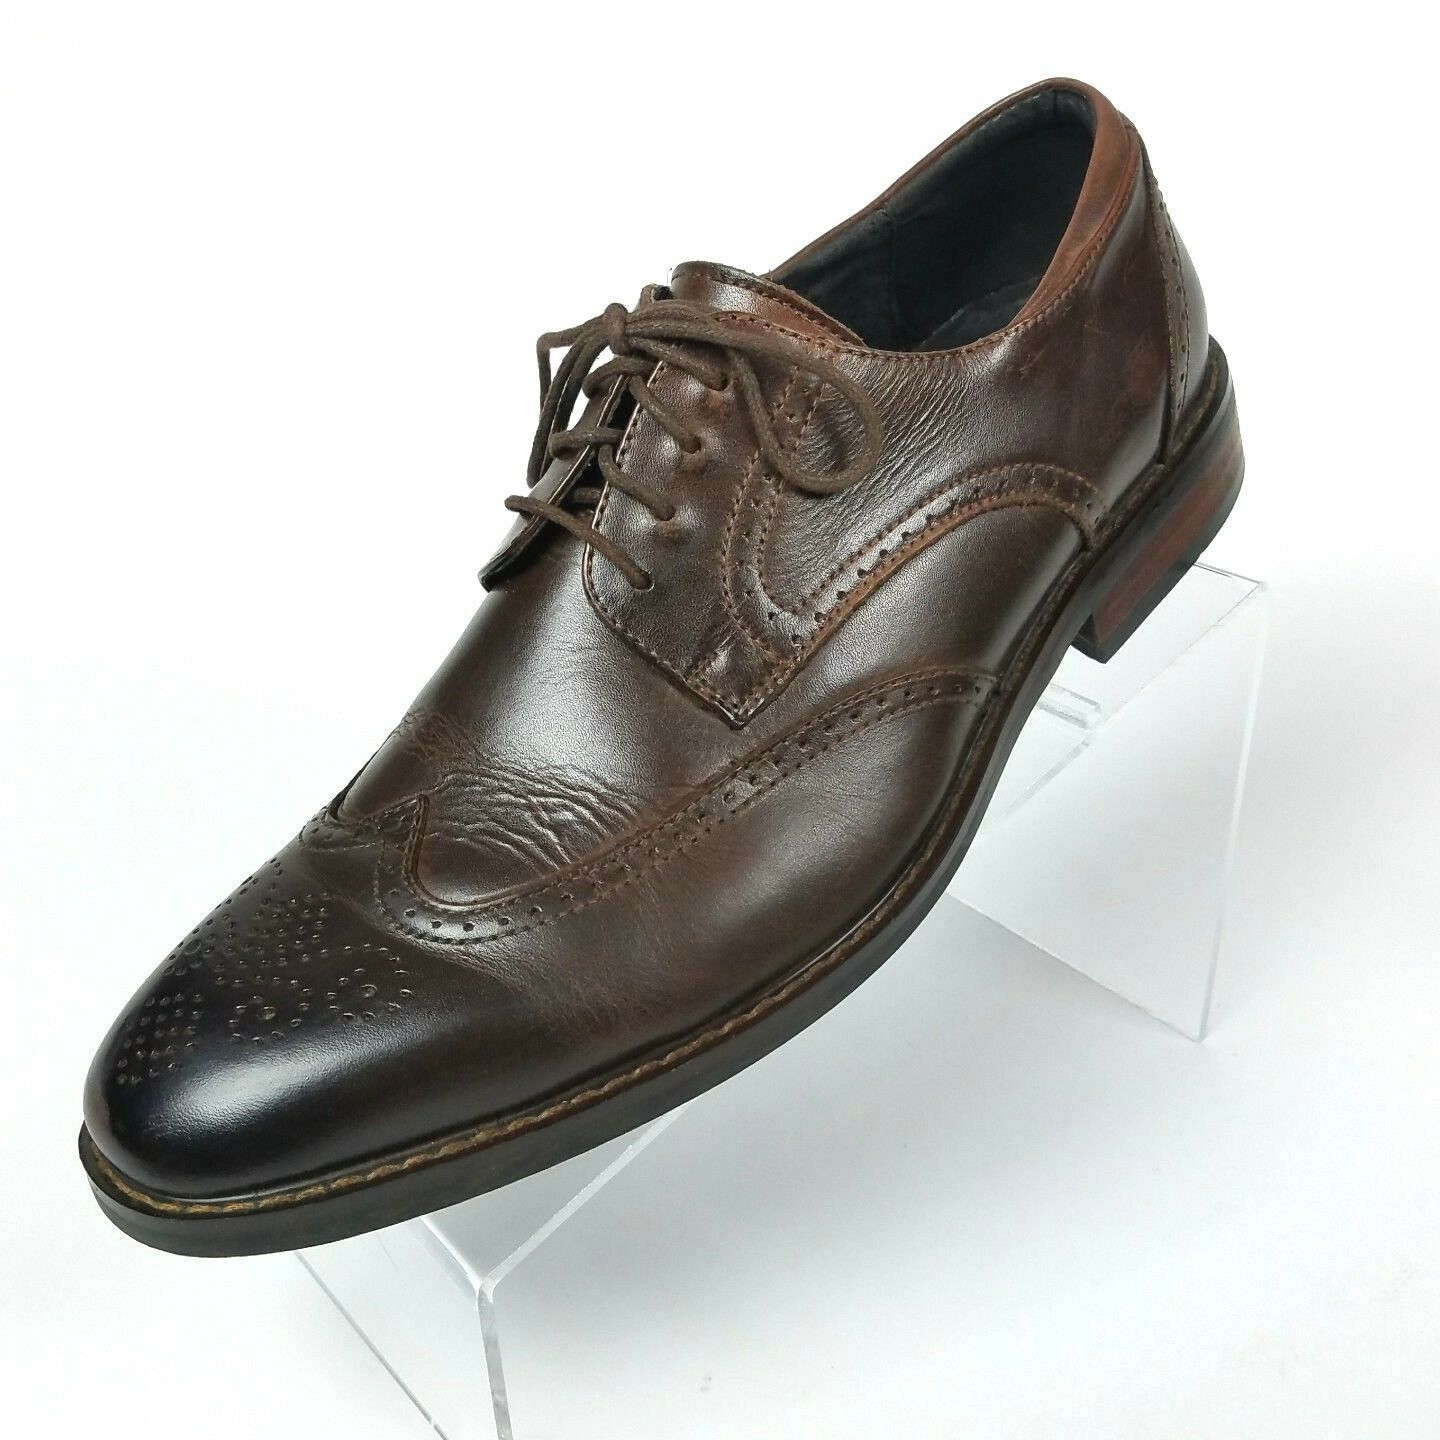 Joseph Abboud Abboud Abboud Wingtips braun Oxfords Dress schuhe Mens Größe 10 D d94a58